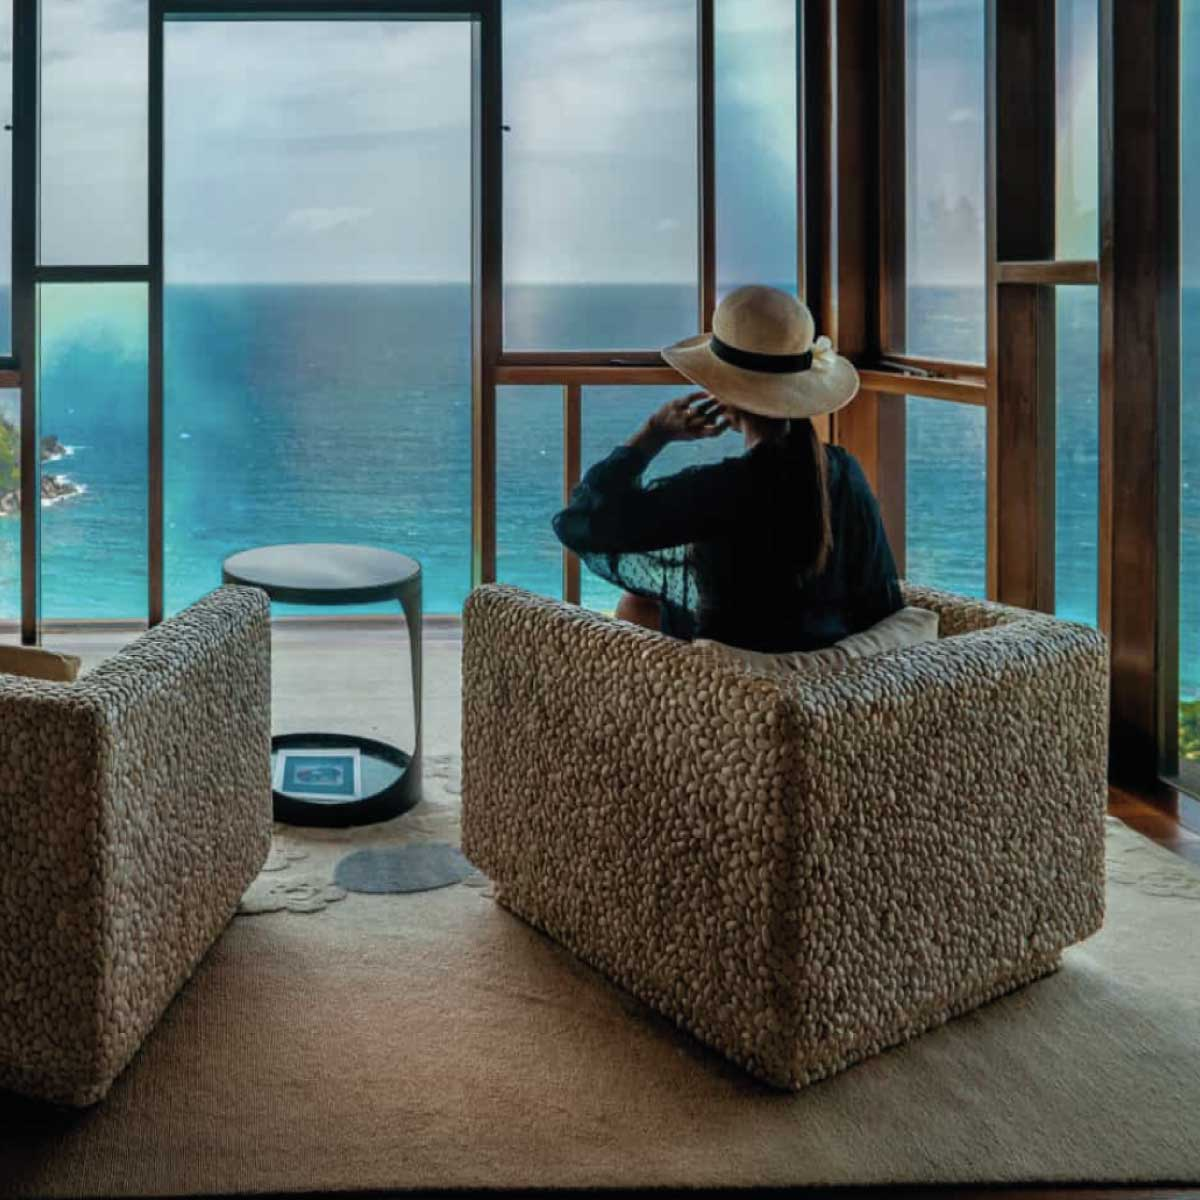 Deluxe One-bedroom Apartment with Oceanview